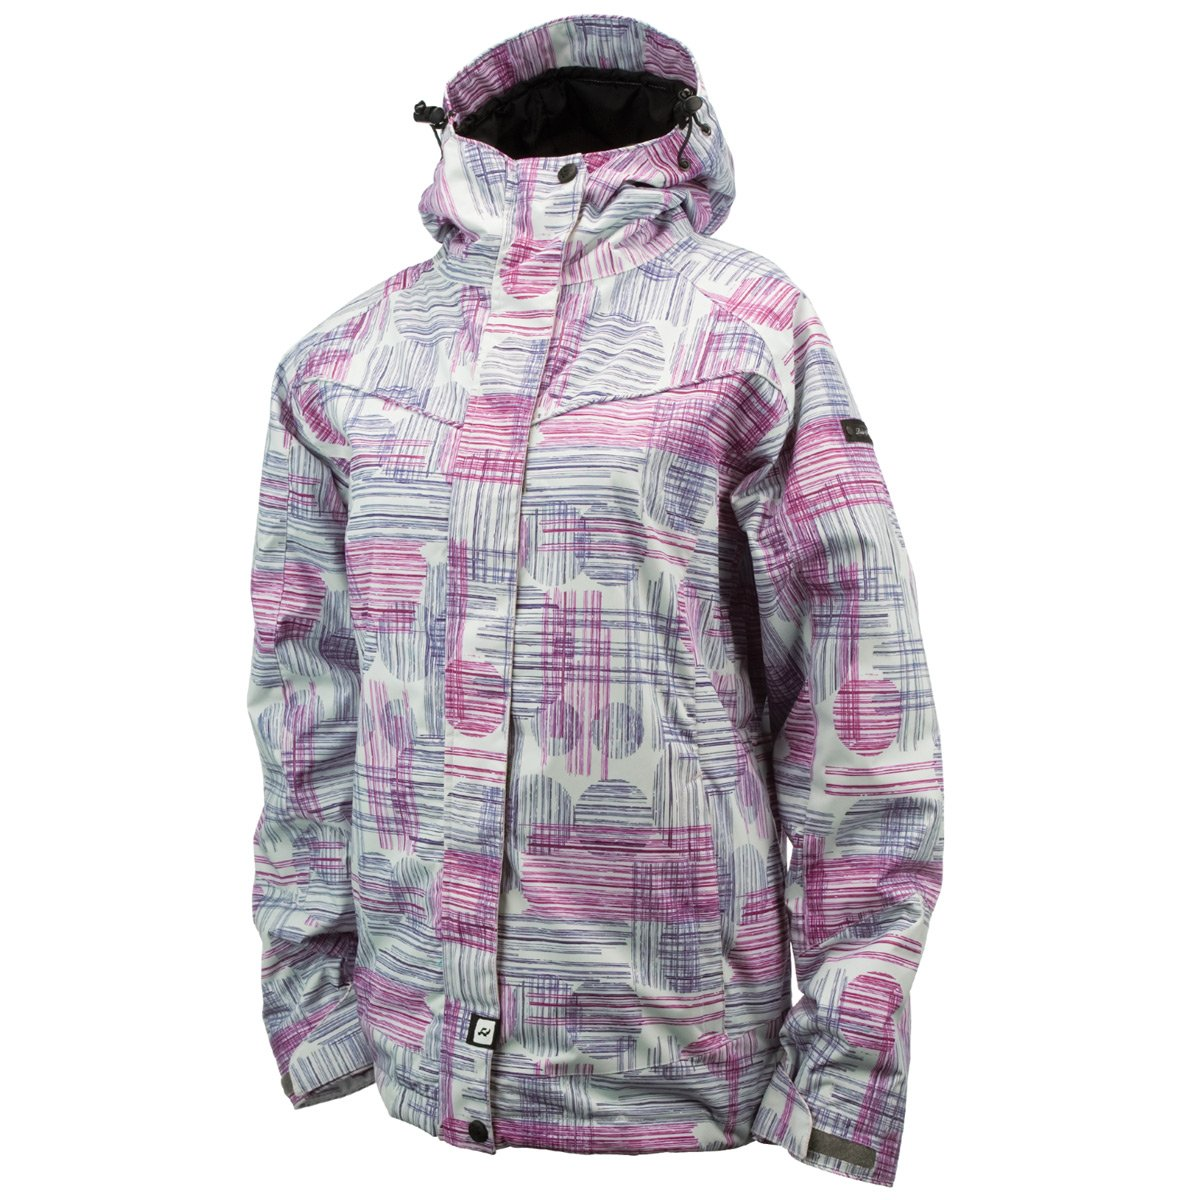 Damen Snowboard Jacke Ride Broadview Jacket women günstig bestellen